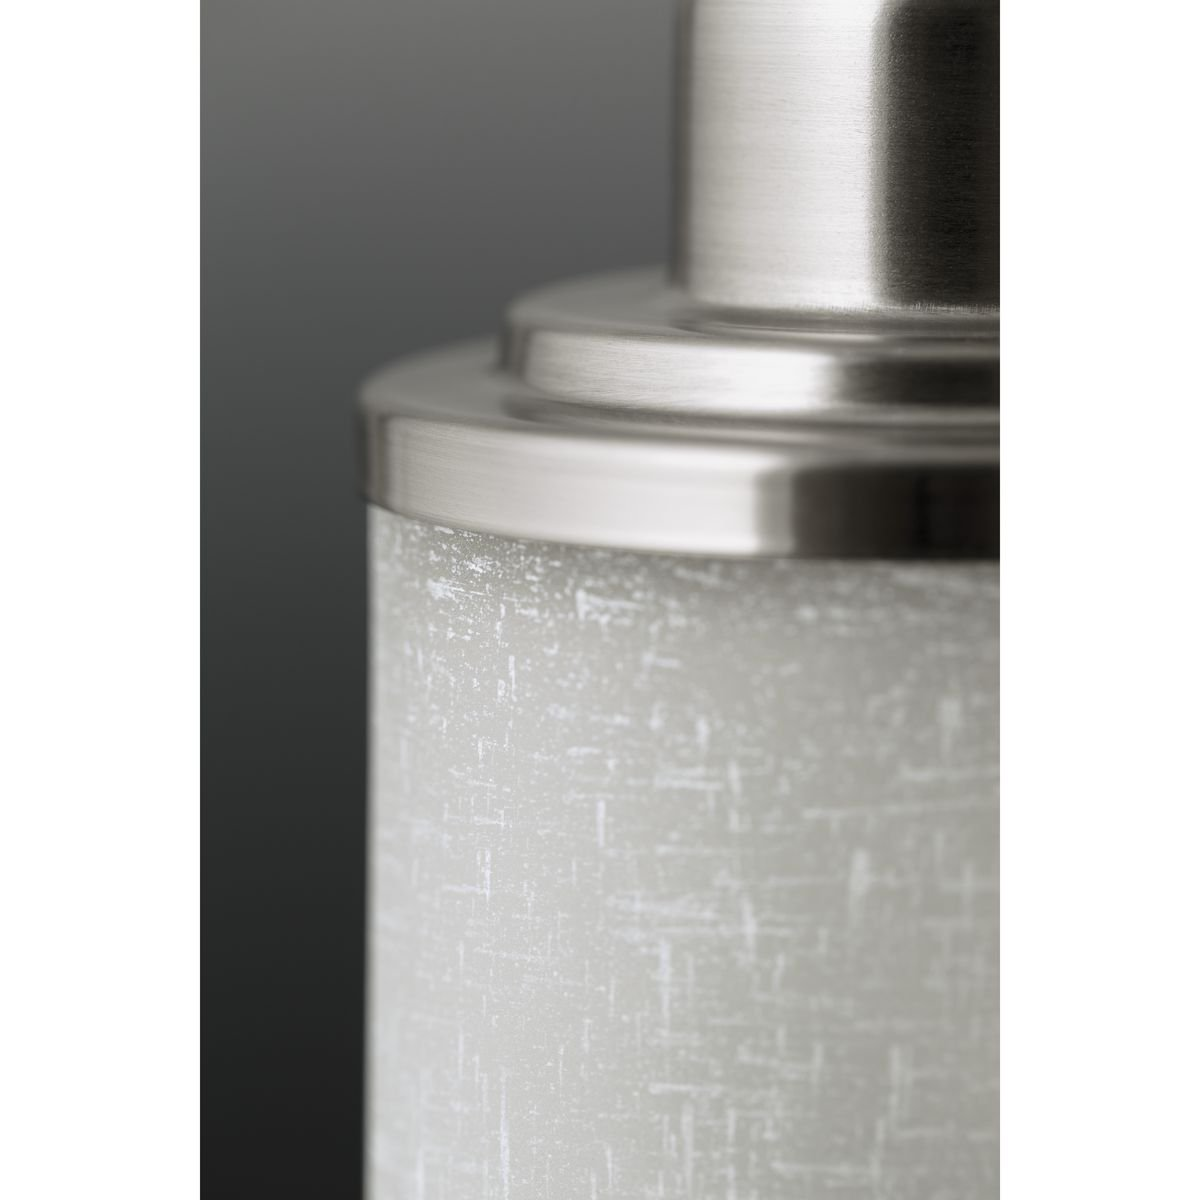 Progress Lighting P2977-09 2-Light Wall Bracket with White Linen Finished Glass and Clear Edge Accent Strip, Brushed Nickel by Progress Lighting (Image #2)